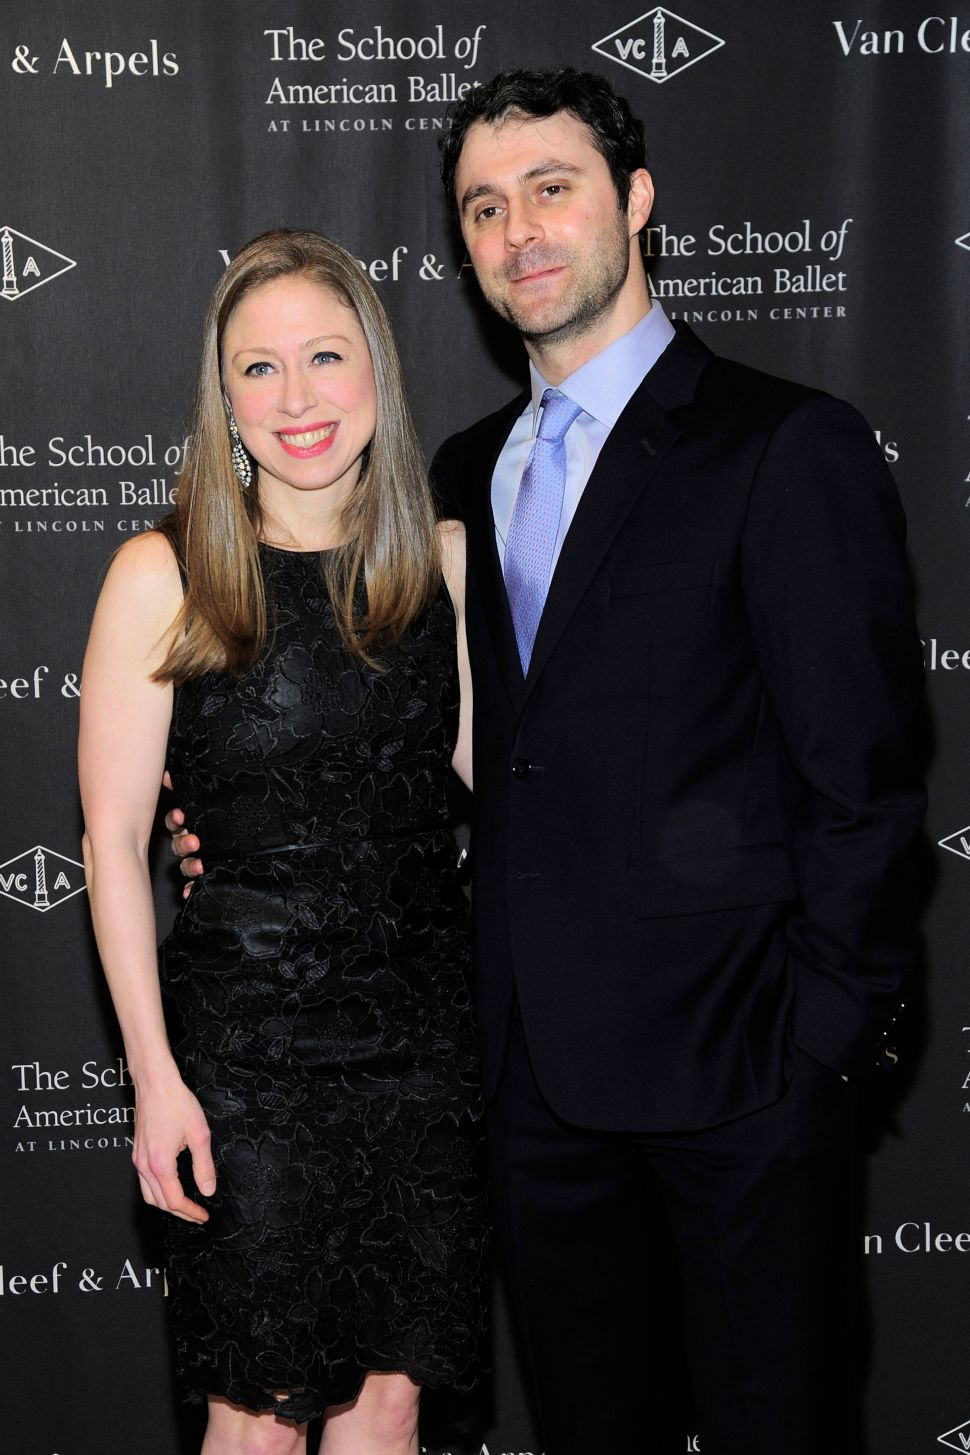 Chelsea Clinton's Night Out at The School of American Ballet's Winter Ball